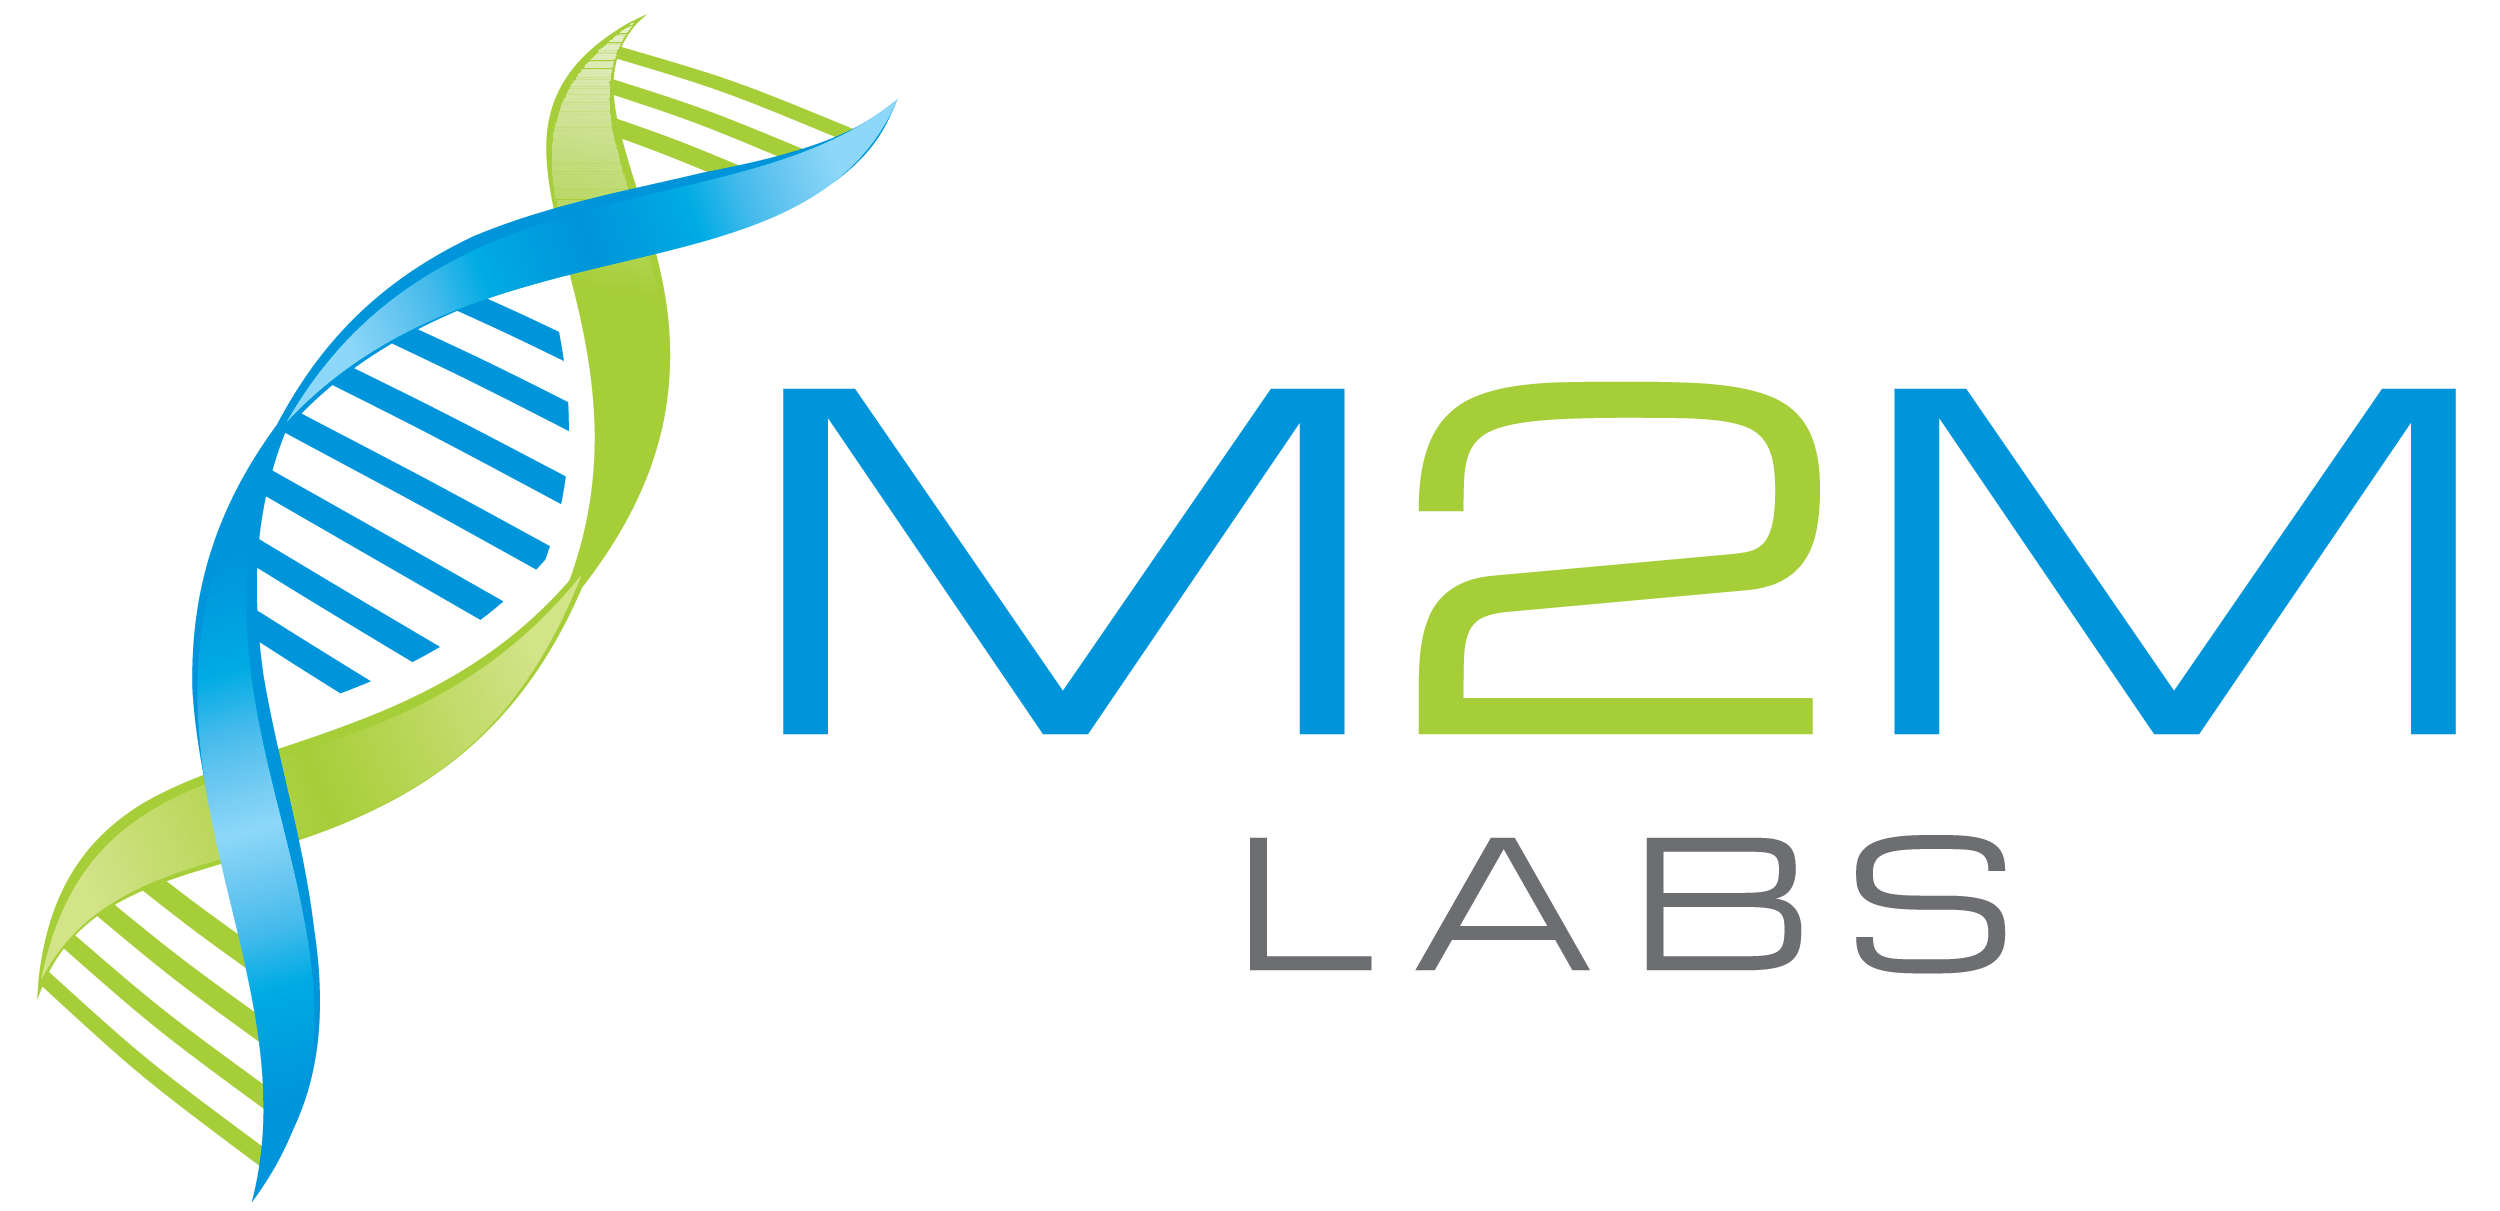 Labs_logoweb-01.png